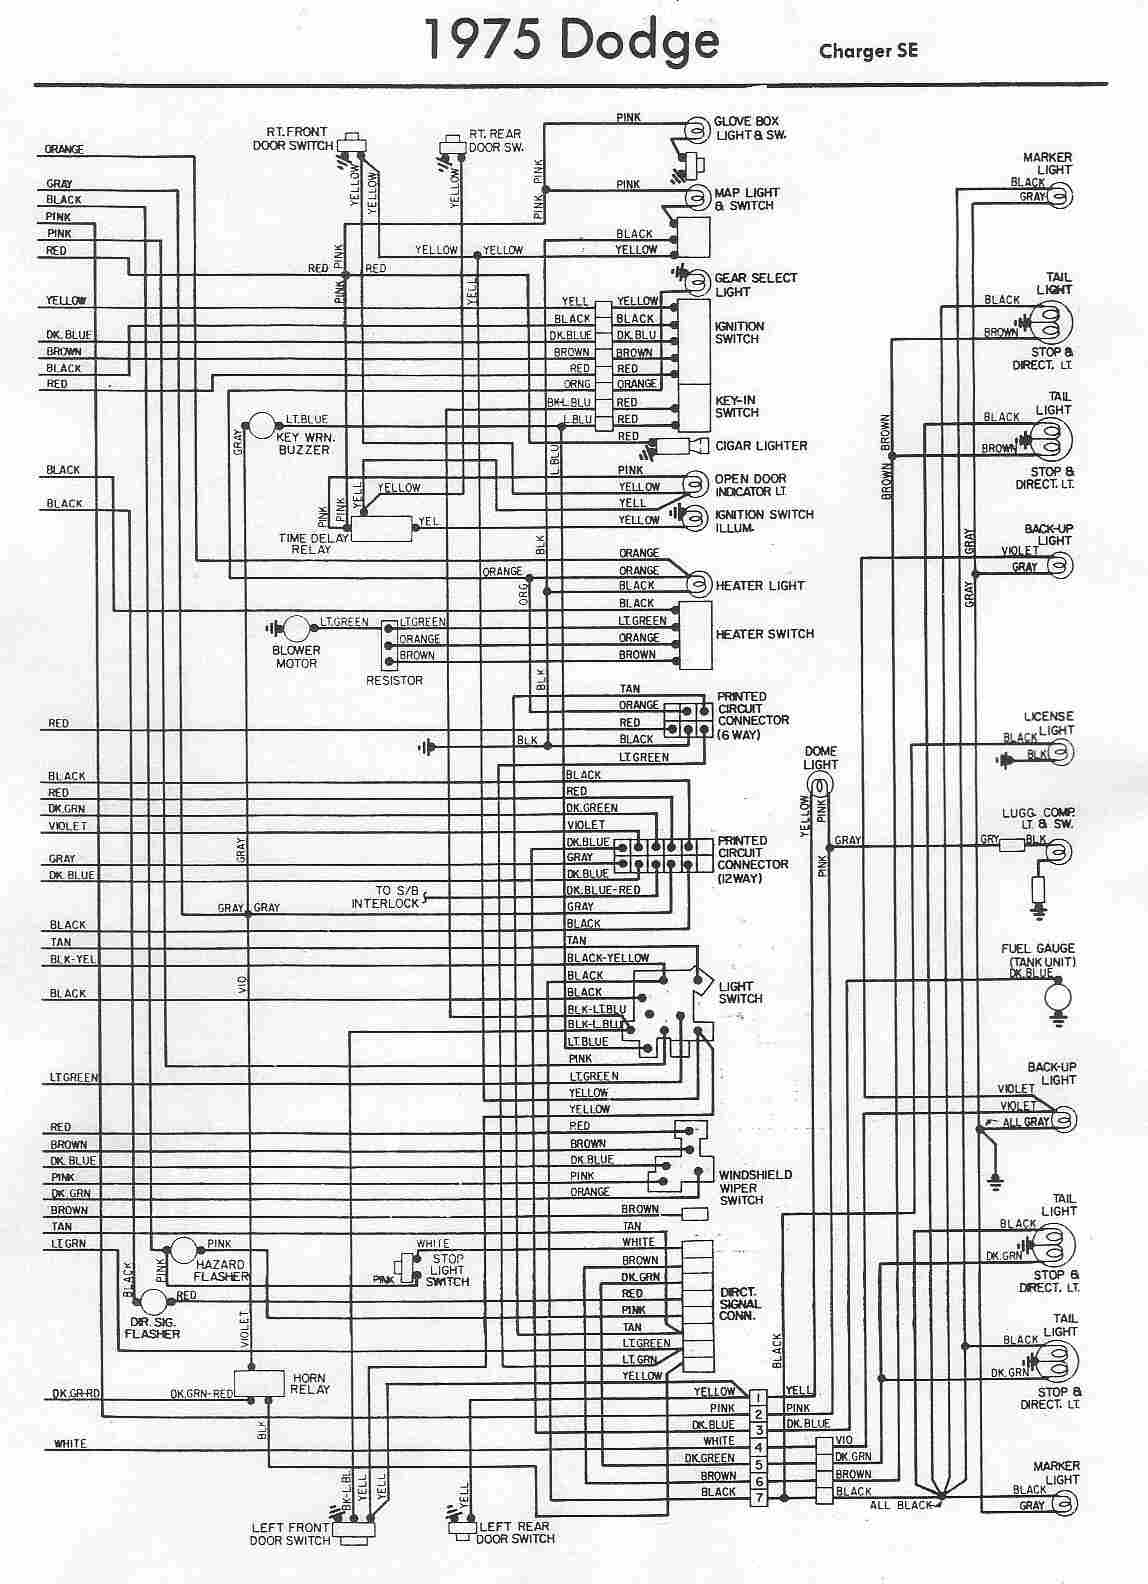 wiring diagram 1974 dodge 100 wiring diagram mega1973 charger wiring diagram 19 [ 1148 x 1584 Pixel ]